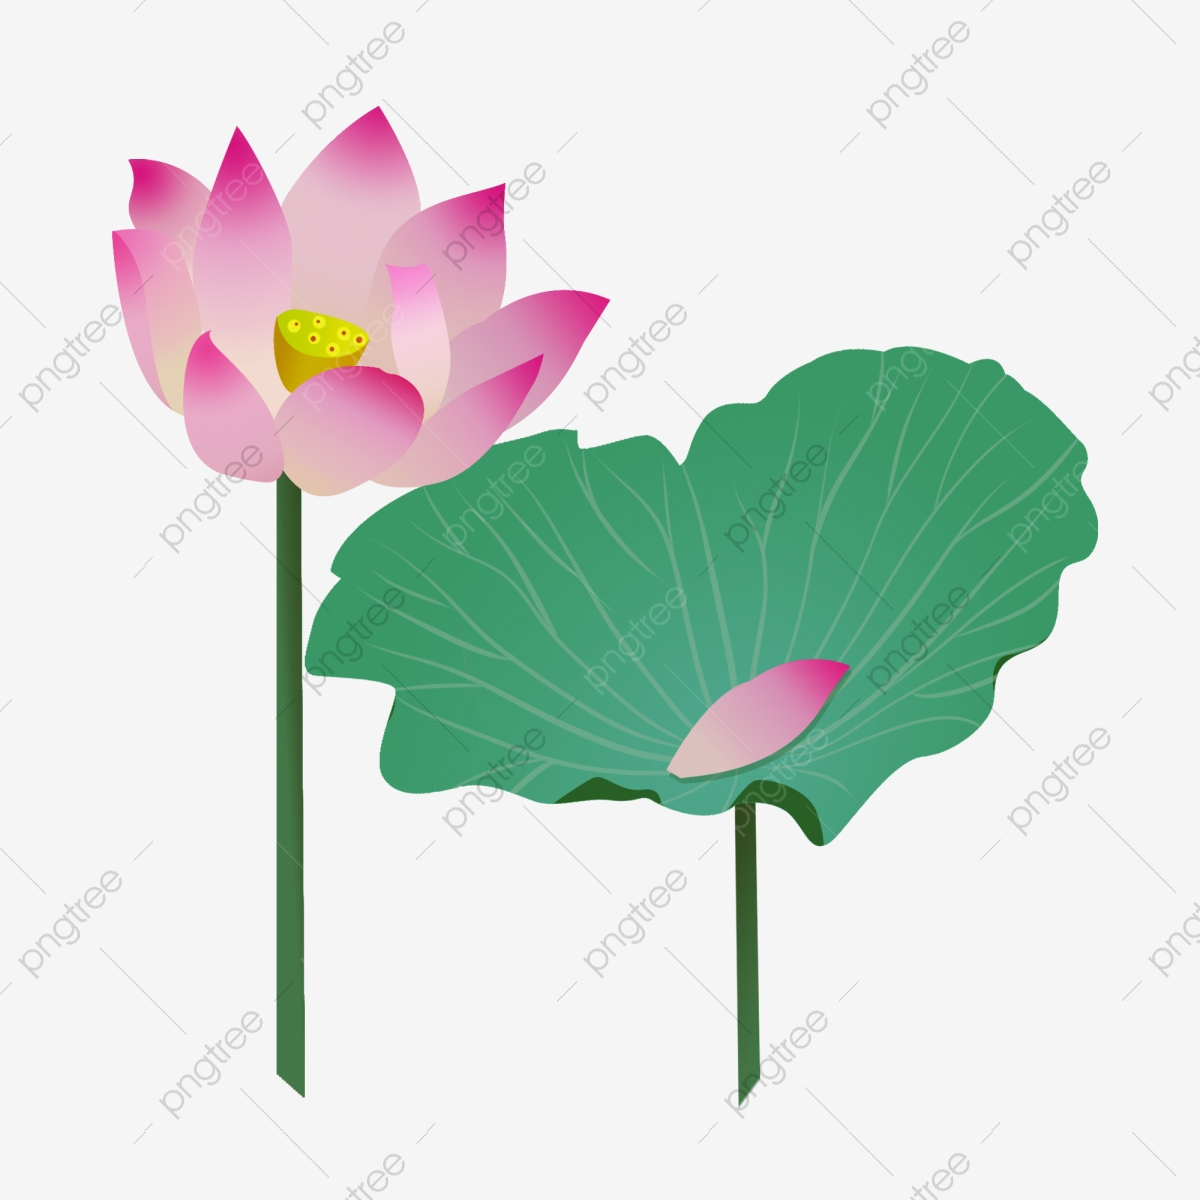 Lotus Flower Cartoon Illustration Flowers Flowers Lotus Png Transparent Clipart Image And Psd File For Free Download